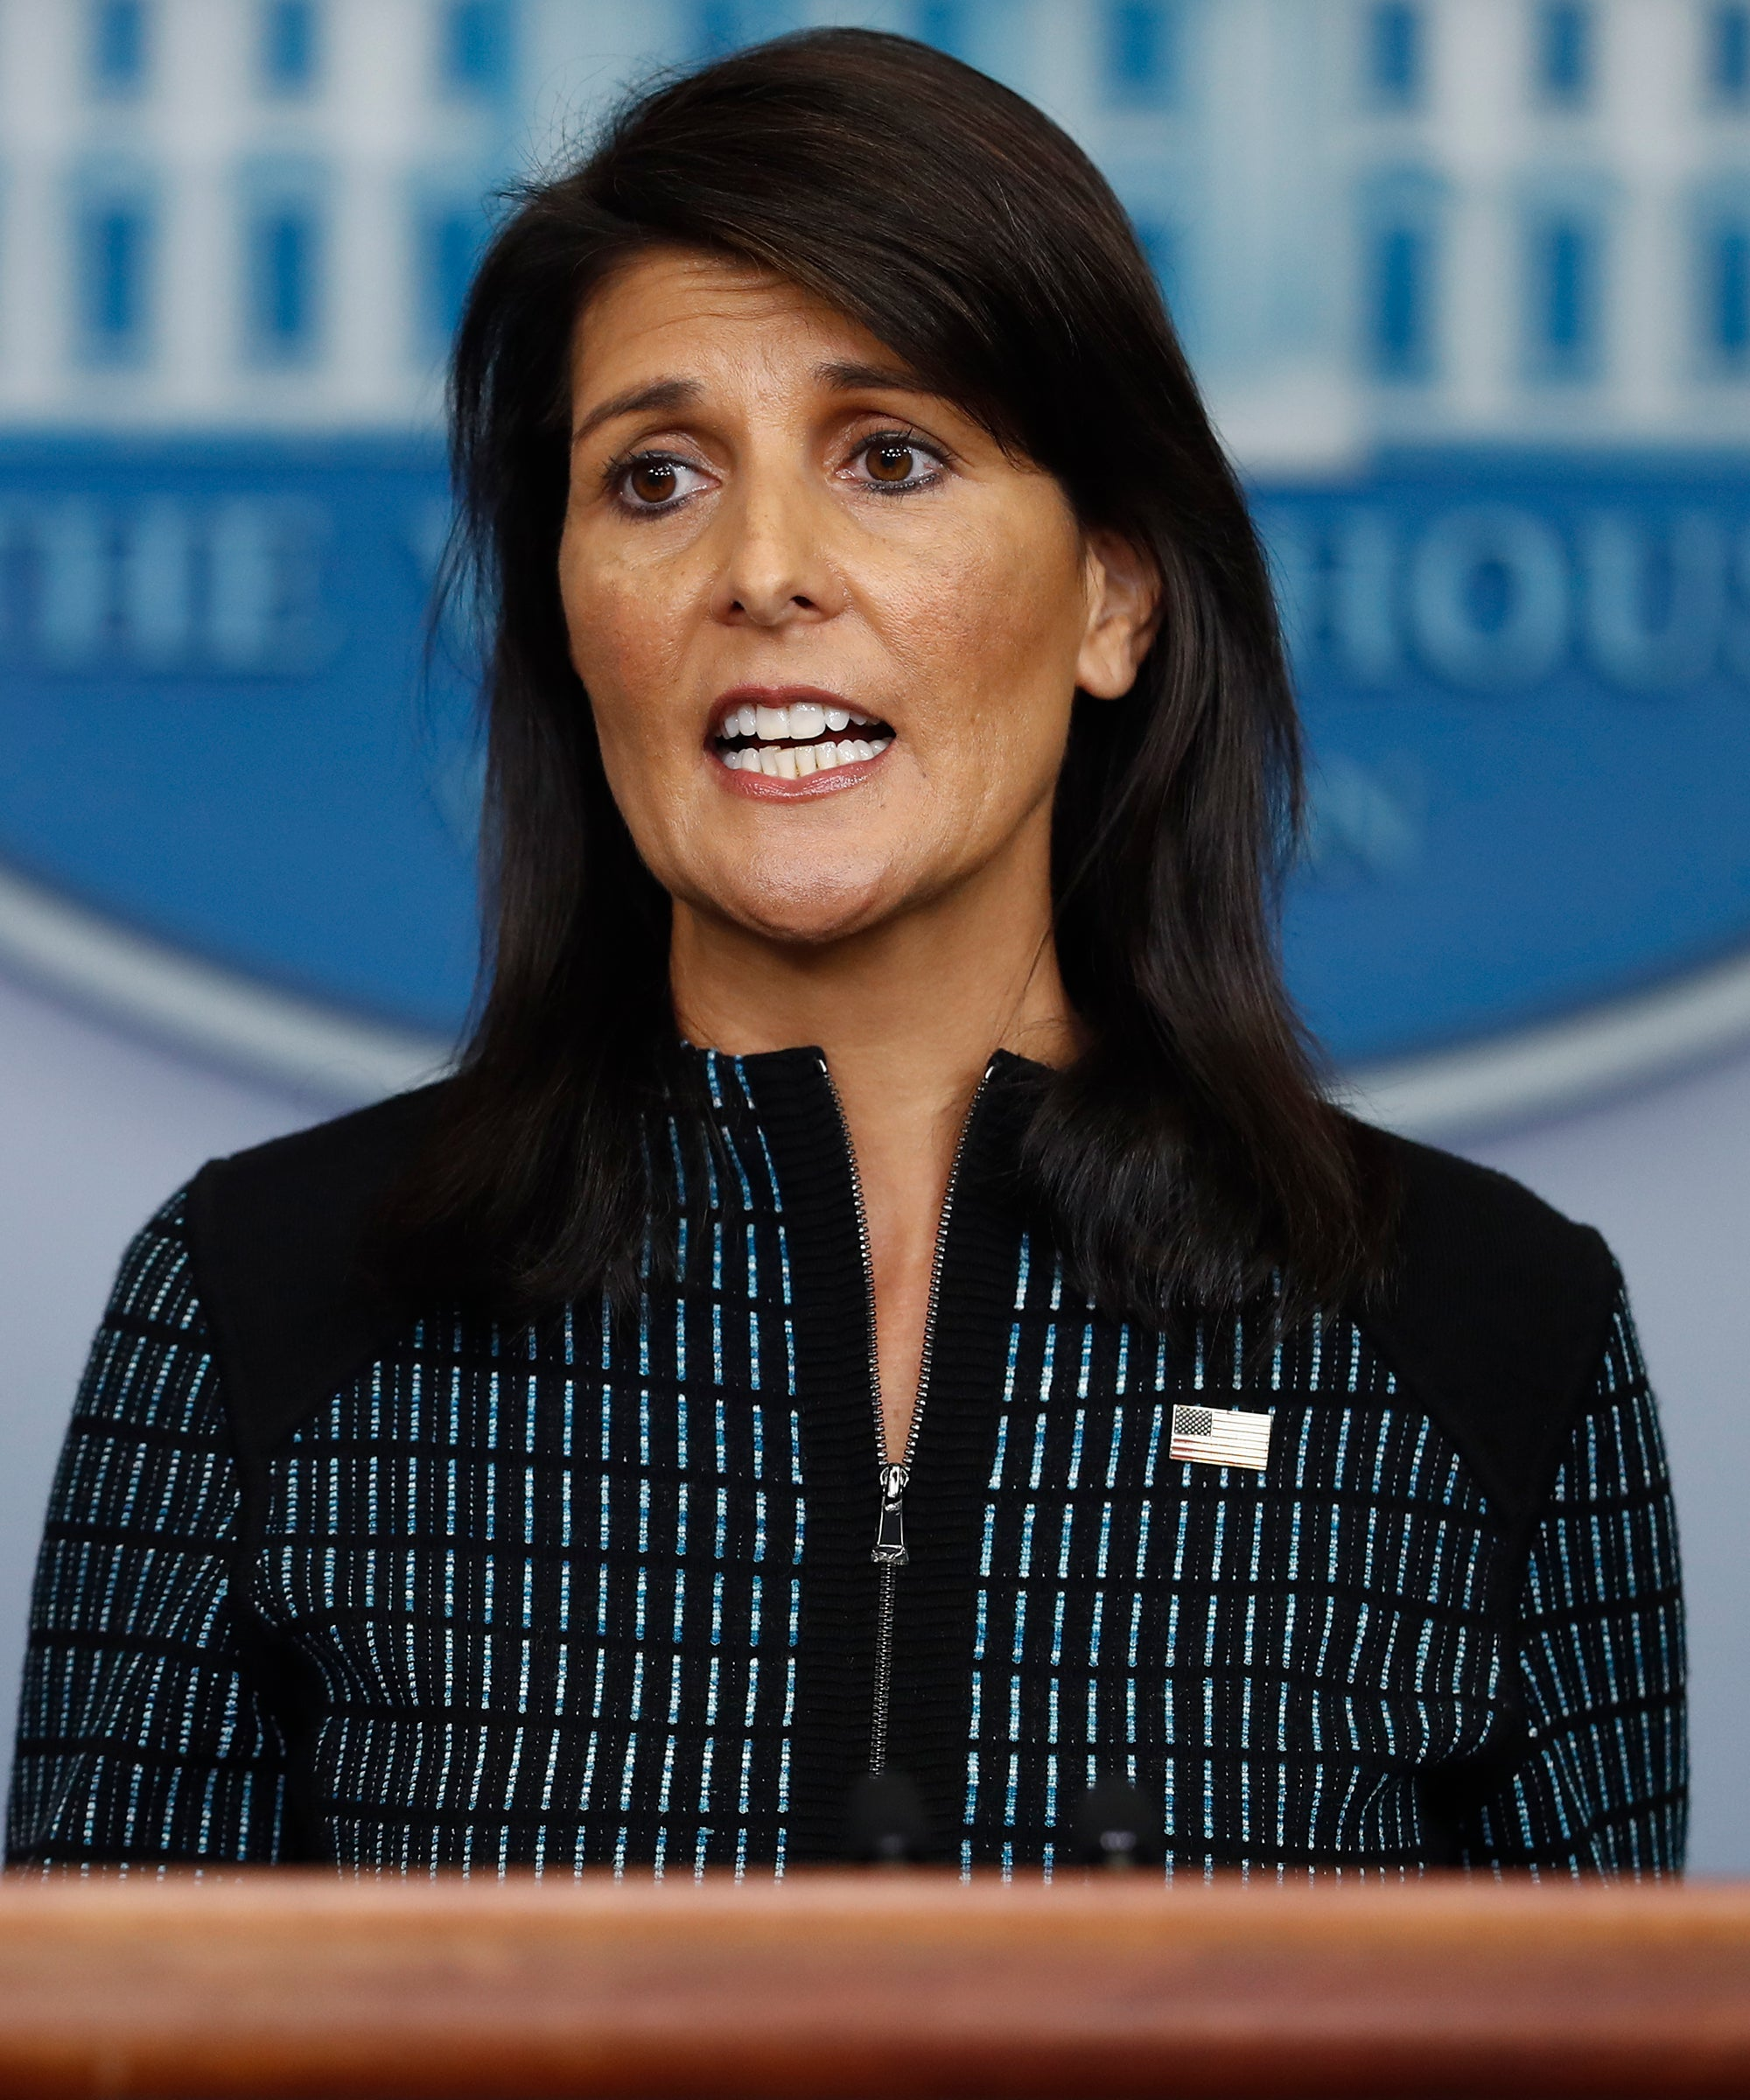 Why On Earth Nikki Haley Thinks We Should Keep The Confederate Flag